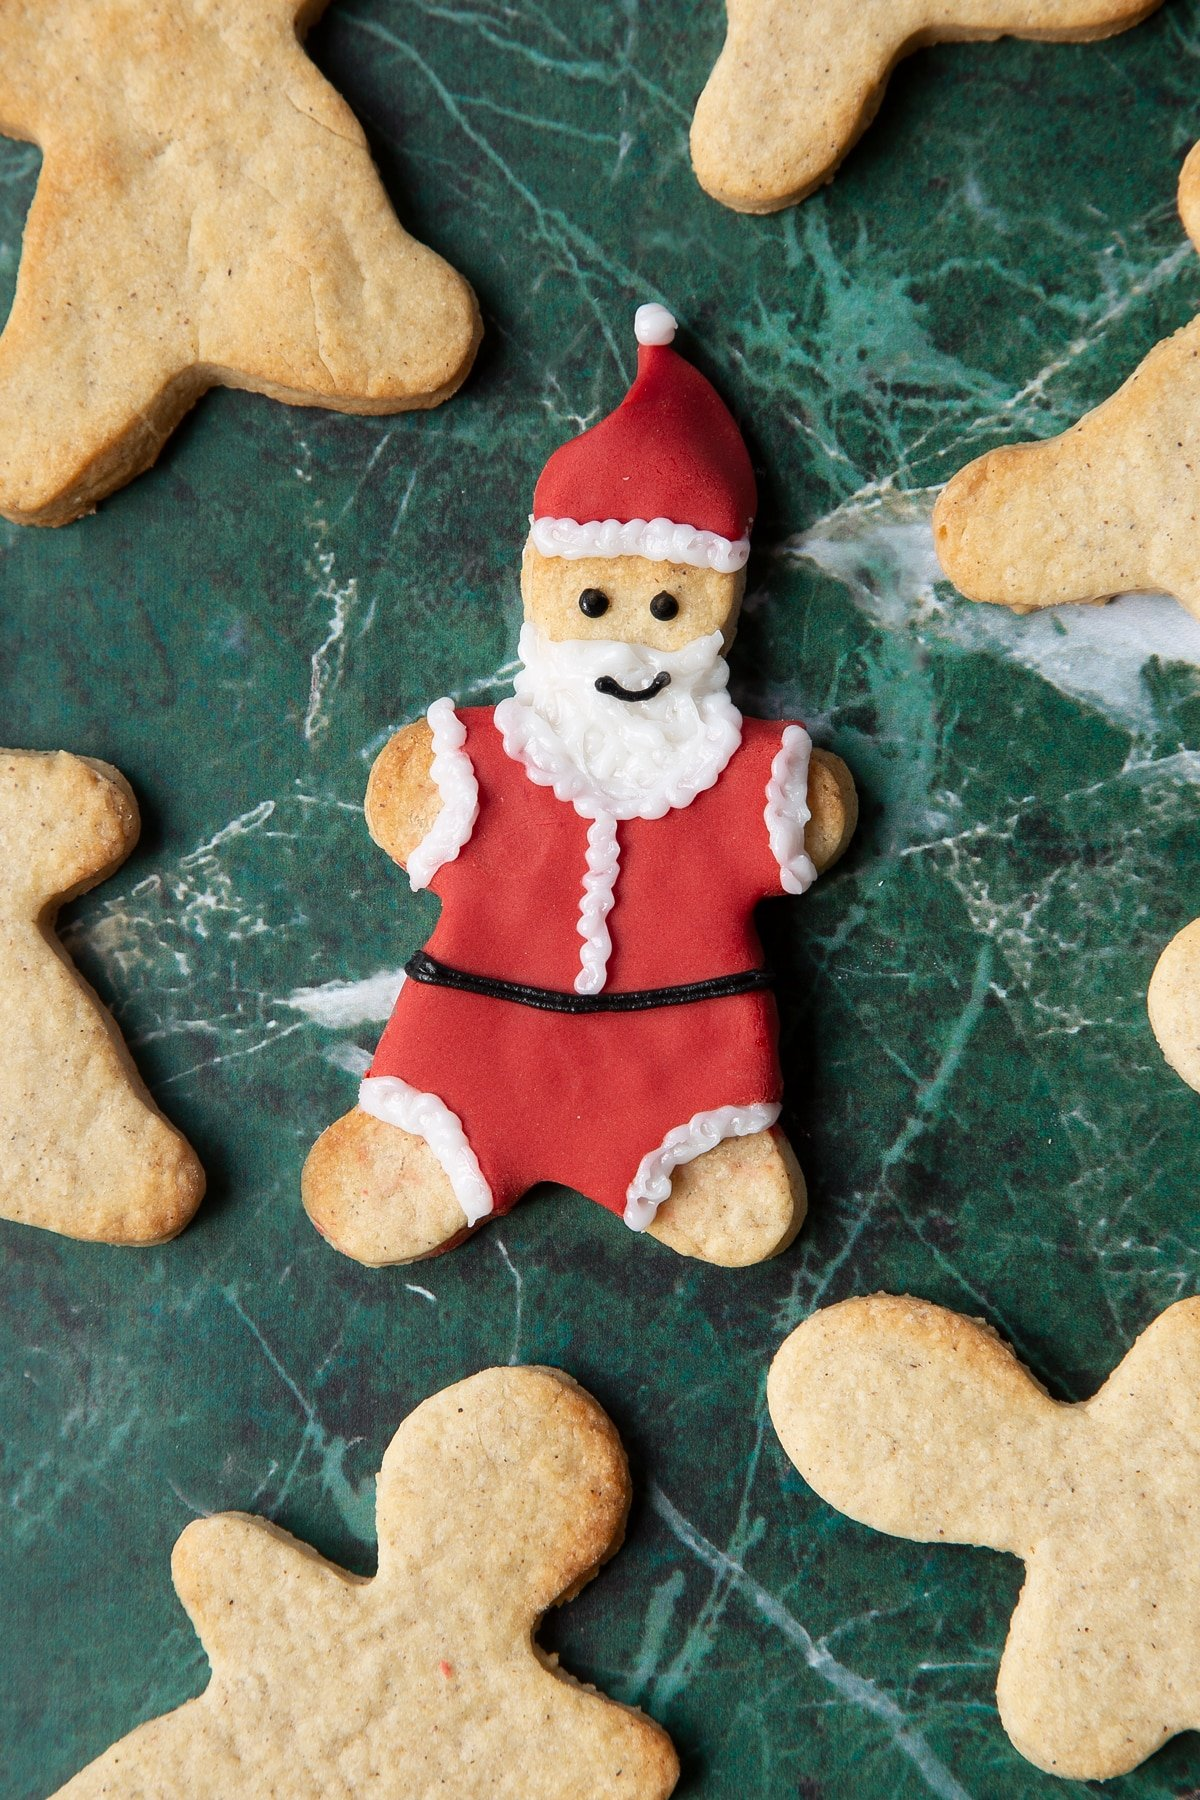 A cookie in the shape of Father Christmas, decorated with a suit and hat made from red sugar paste and writing icing.